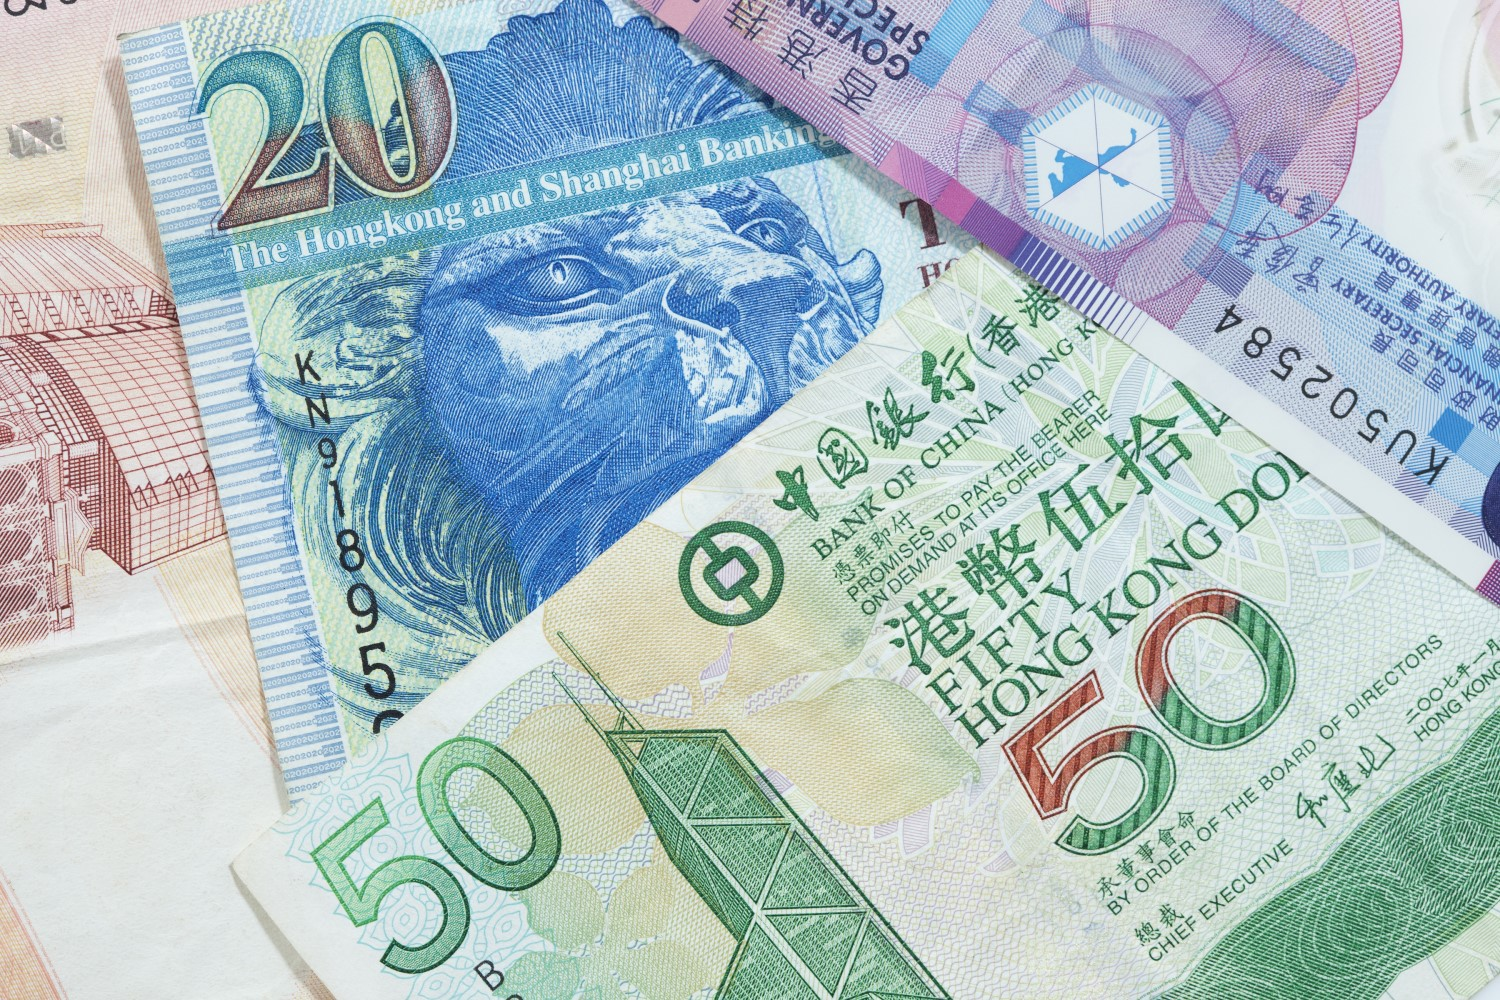 Binance Now Supports Deposits and Withdrawals in Hong-Kong Dollars - CoinDesk